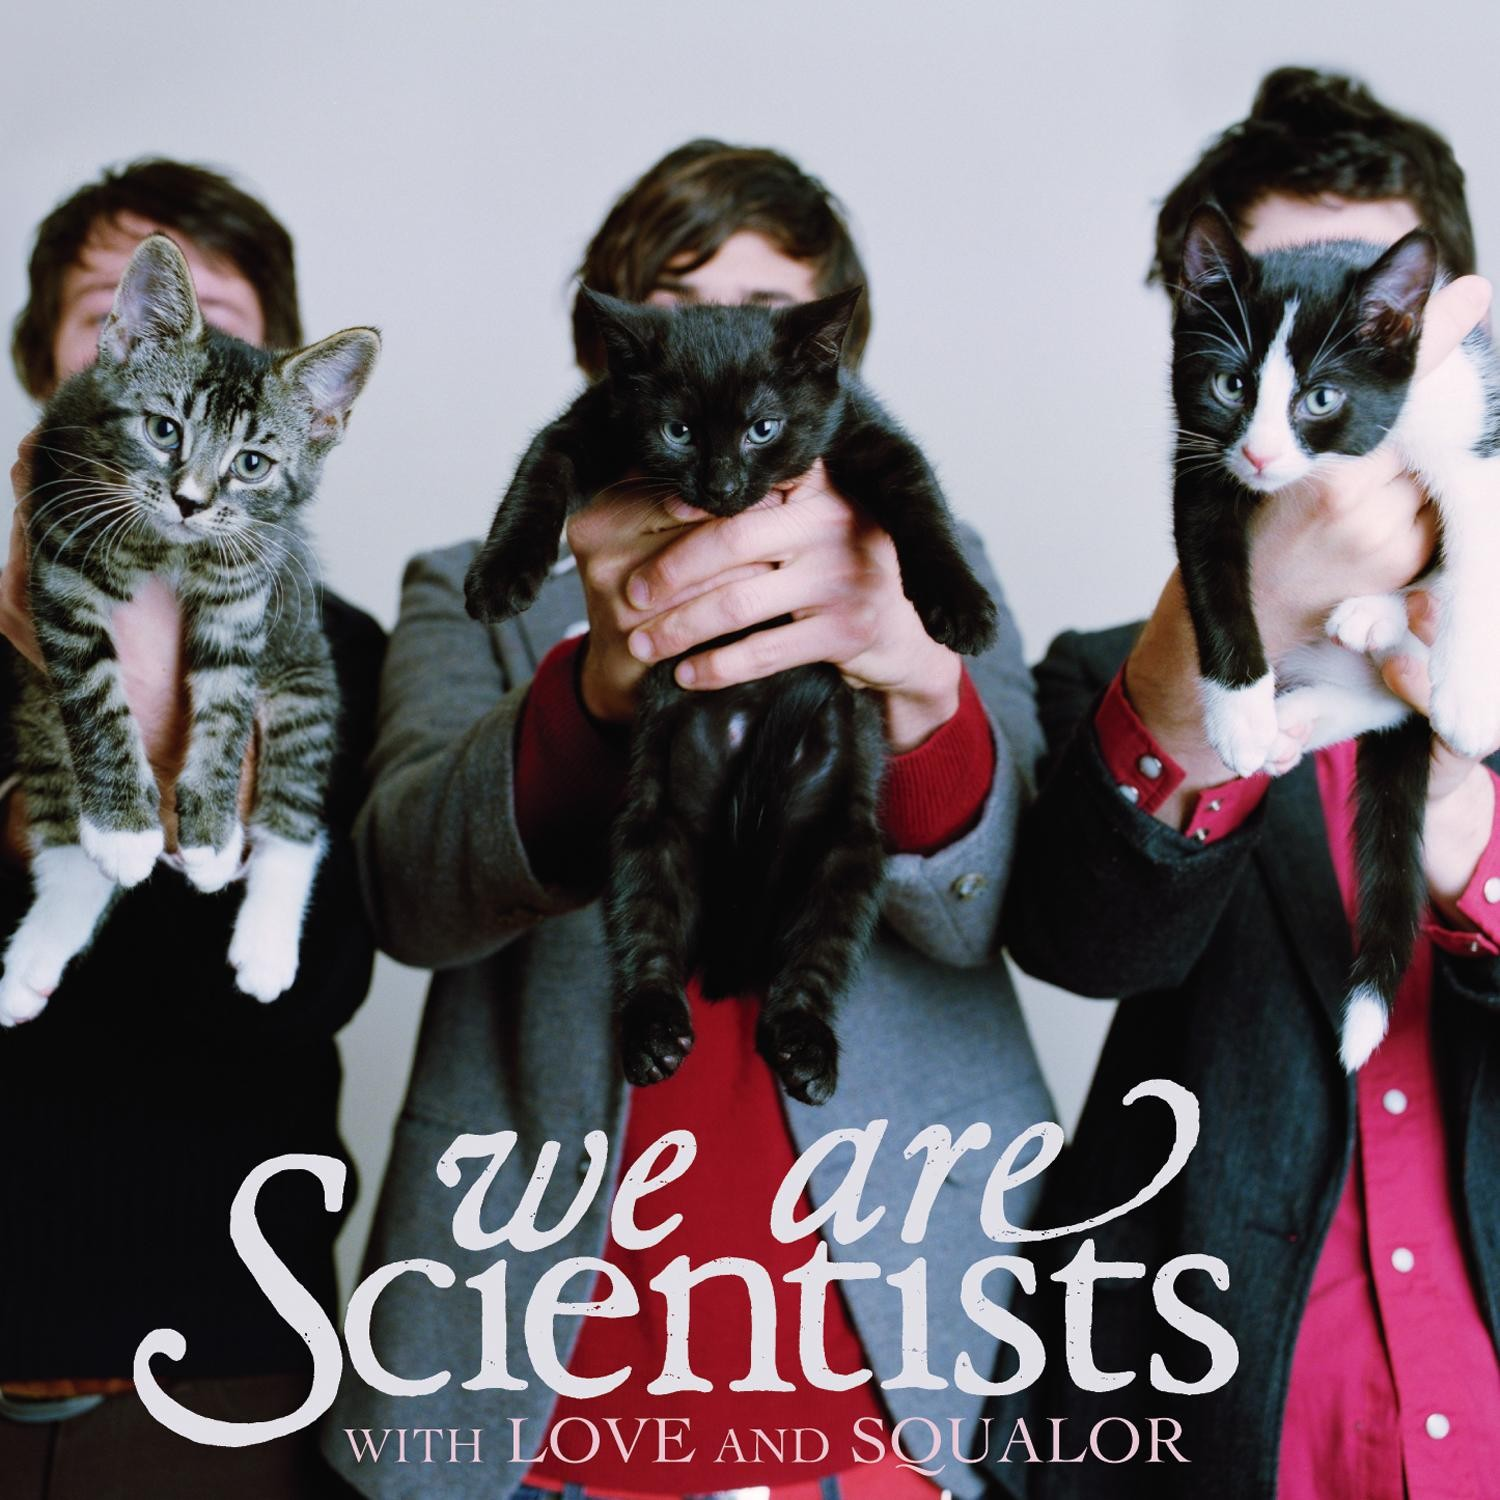 http://3.bp.blogspot.com/-dfyB-PHWaBM/ThQADVuP8sI/AAAAAAAAAIY/cIcf8cSkEXk/s1600/We_Are_Scientists.jpg